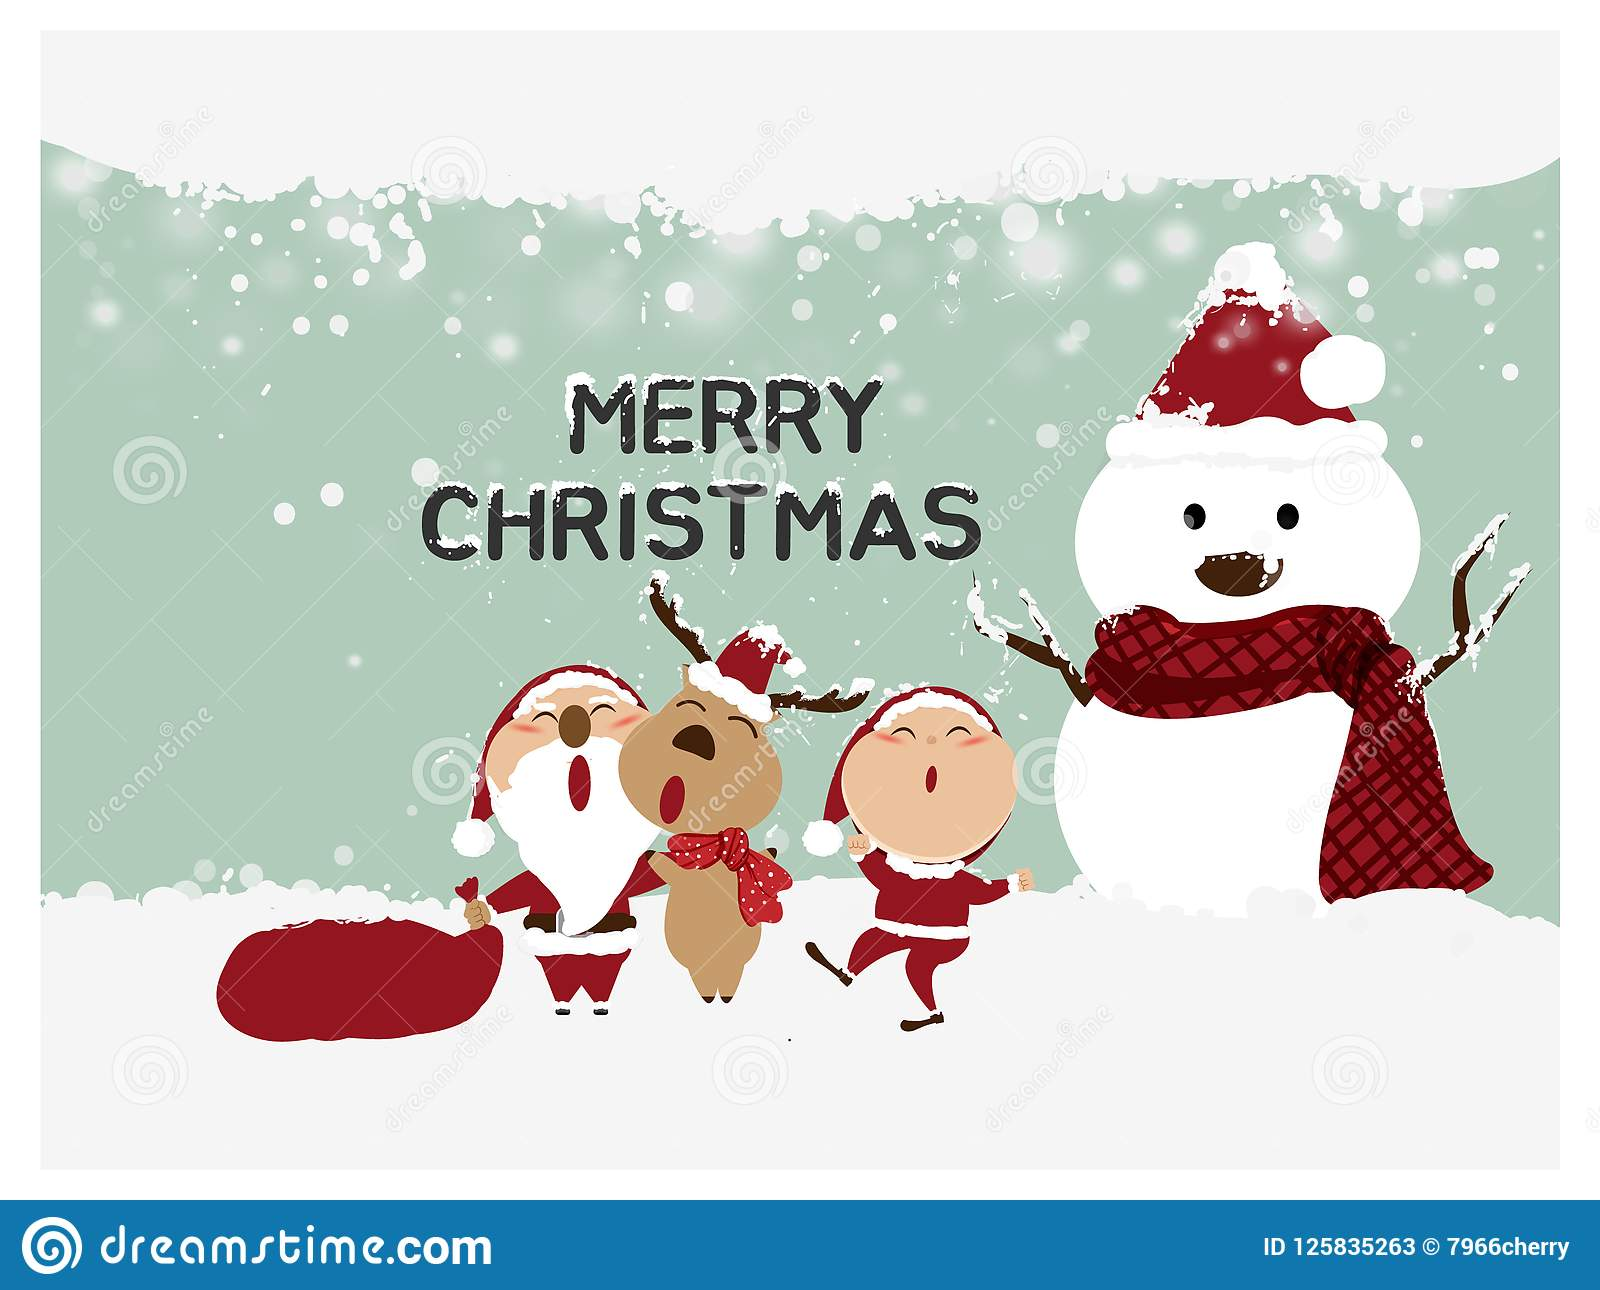 Merry Christmas And Happy New Year,Santa Claus,Snowman